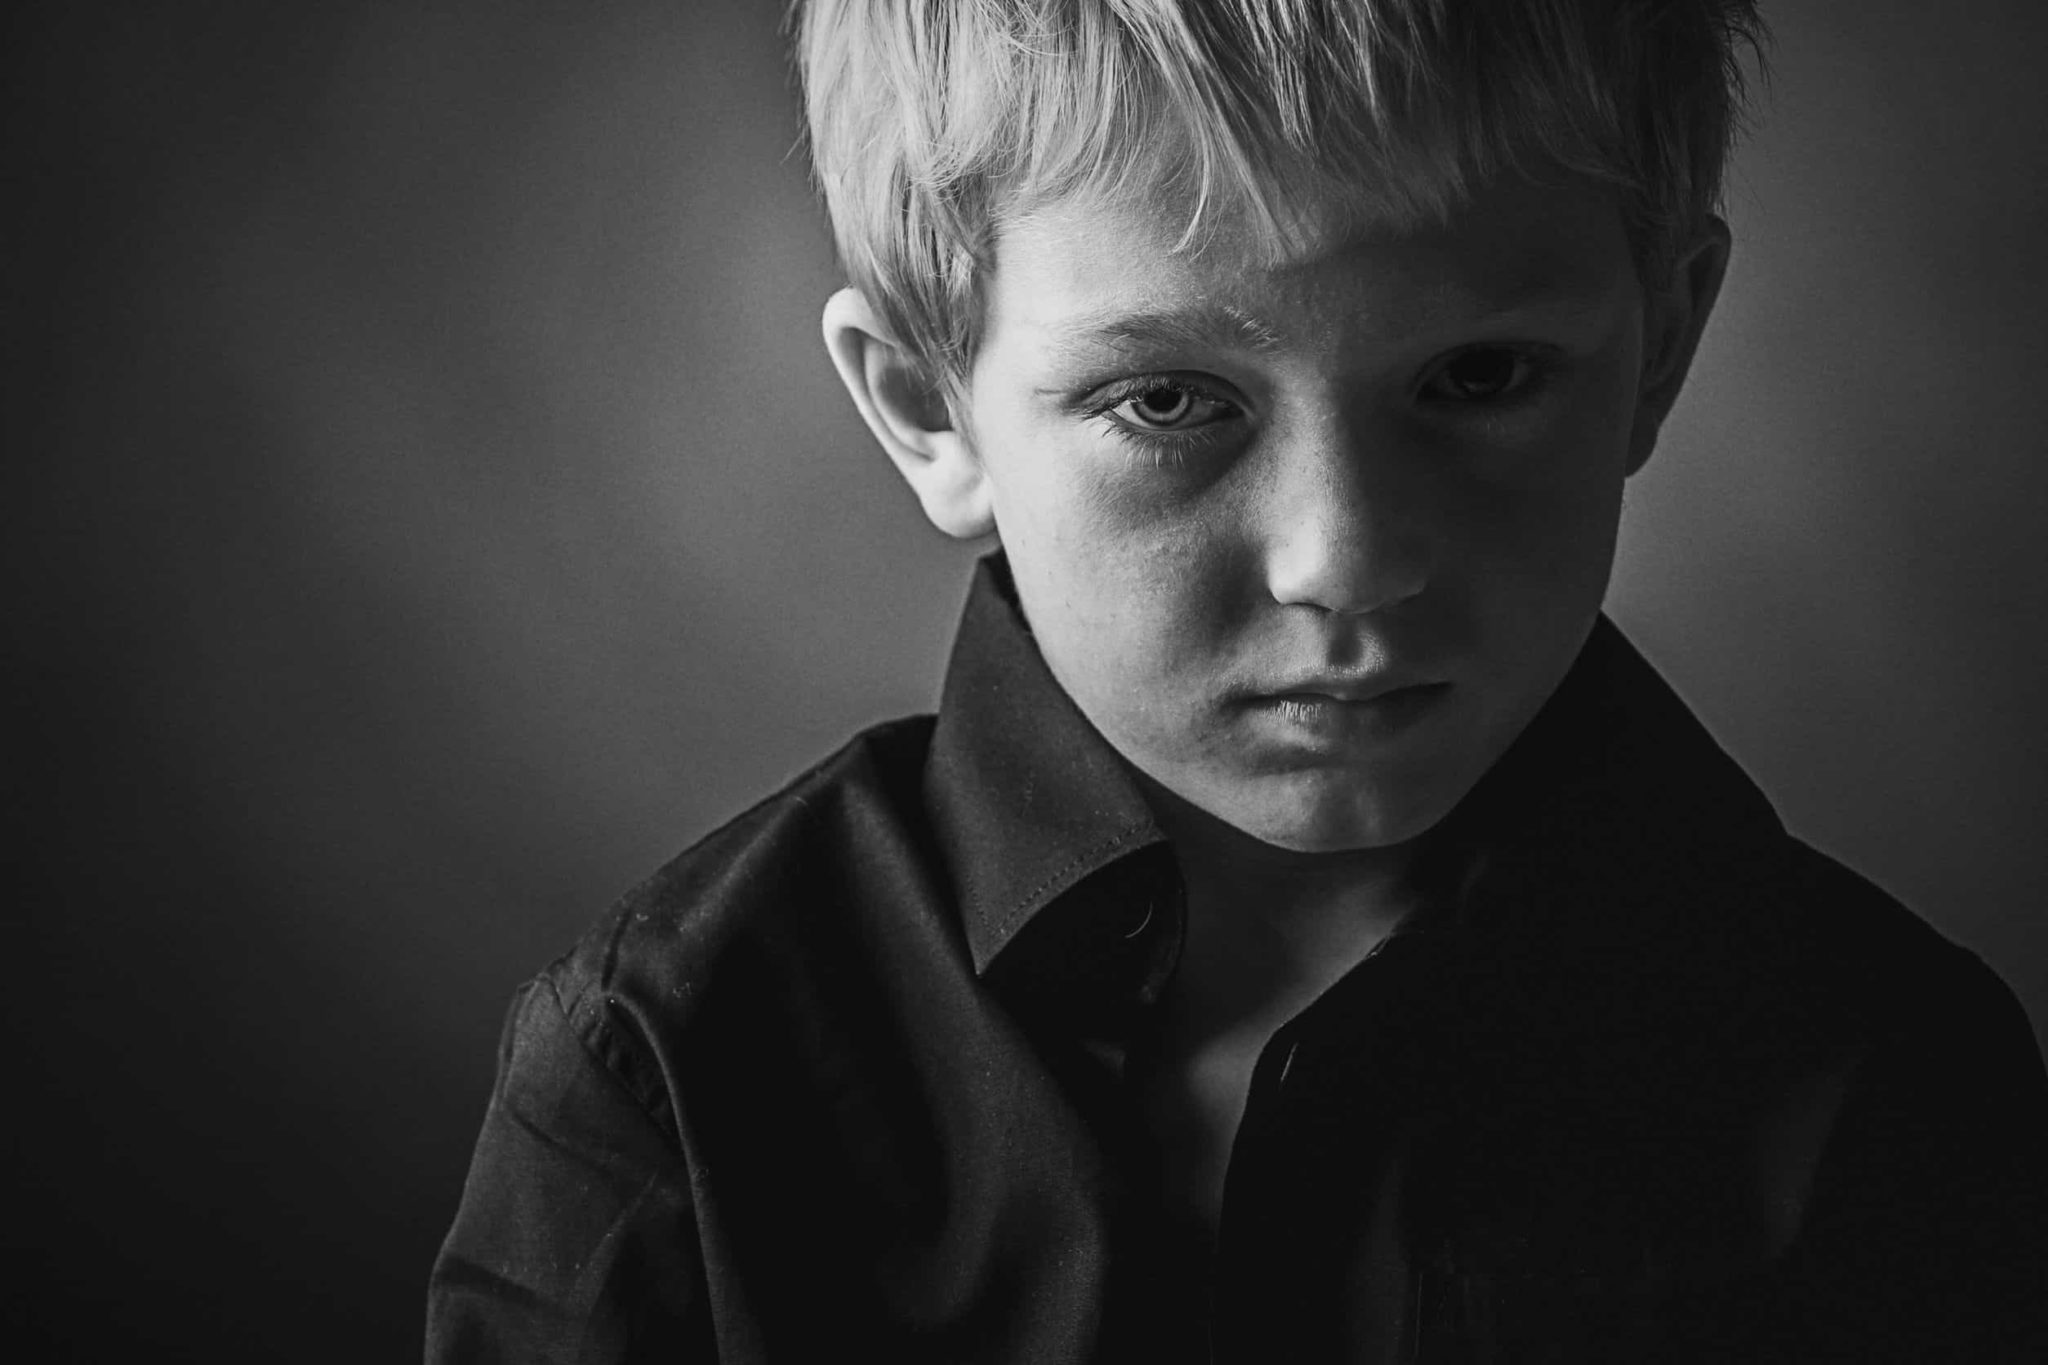 Signs of Child Abuse • Mandatory Classes • Court Ordered Classes • The Functions of Anger • Affordable Mandatory Classes • www.affordablemandatoryclasses.com